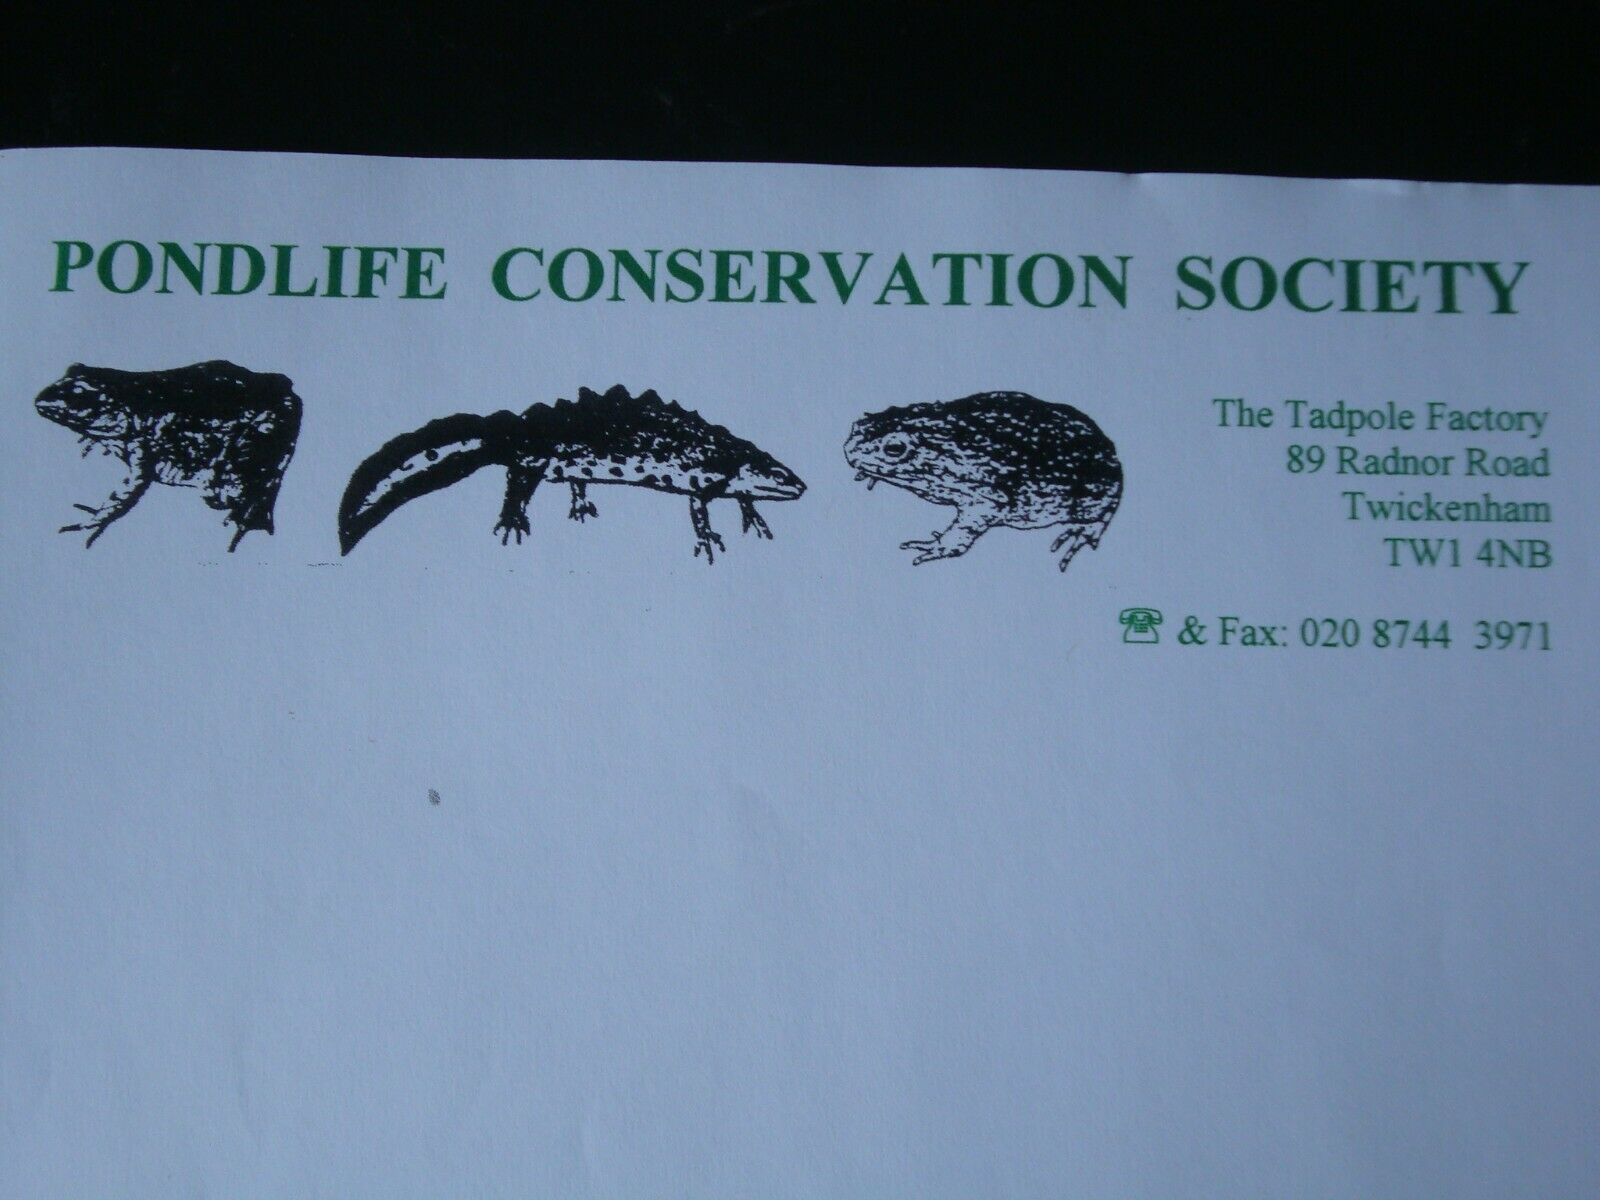 BUSINESS OPPORTUNITY - WILDLIFE SOCIETY + WATERLILY & AQUATIC PLANTS BUSINESS